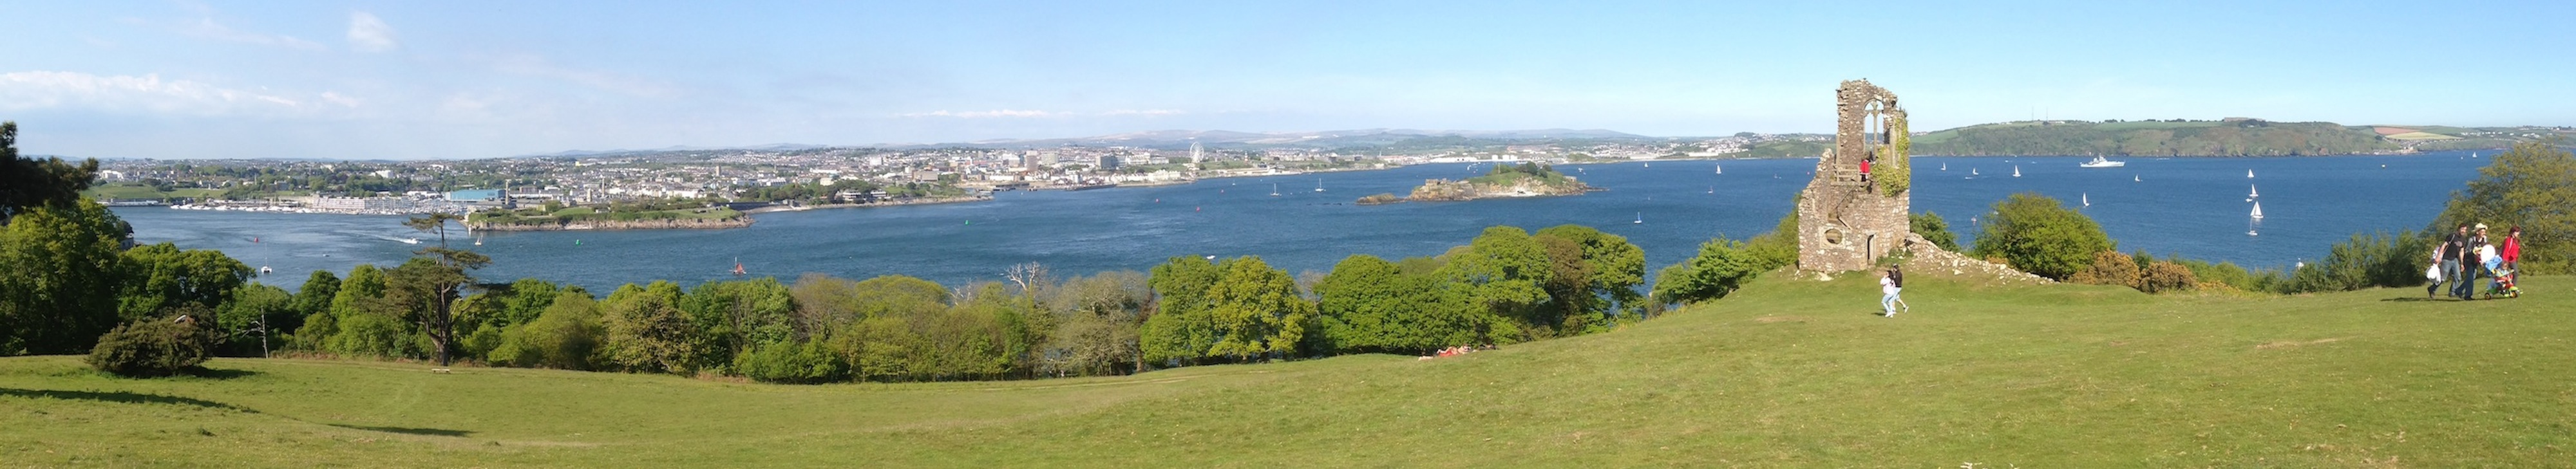 Panorama of the city from Cornwall